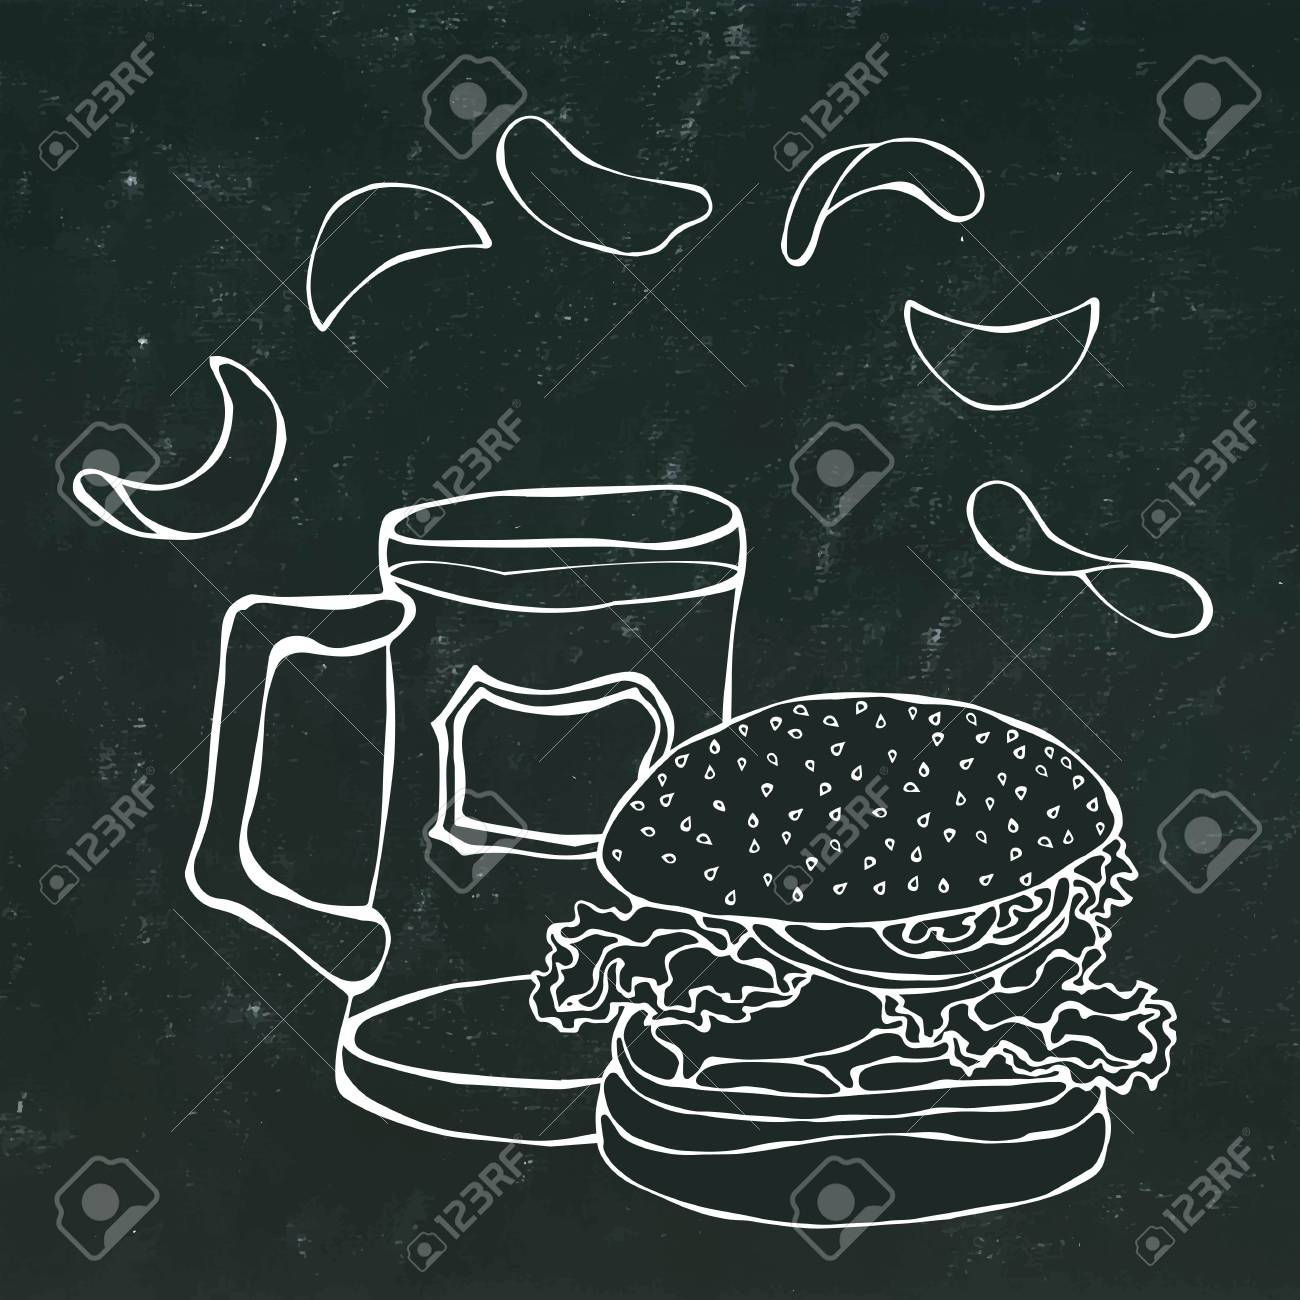 Big Hamburger Or Cheeseburger Beer Mug Or Pint And Potato Chips Royalty Free Cliparts Vectors And Stock Illustration Image 80763302